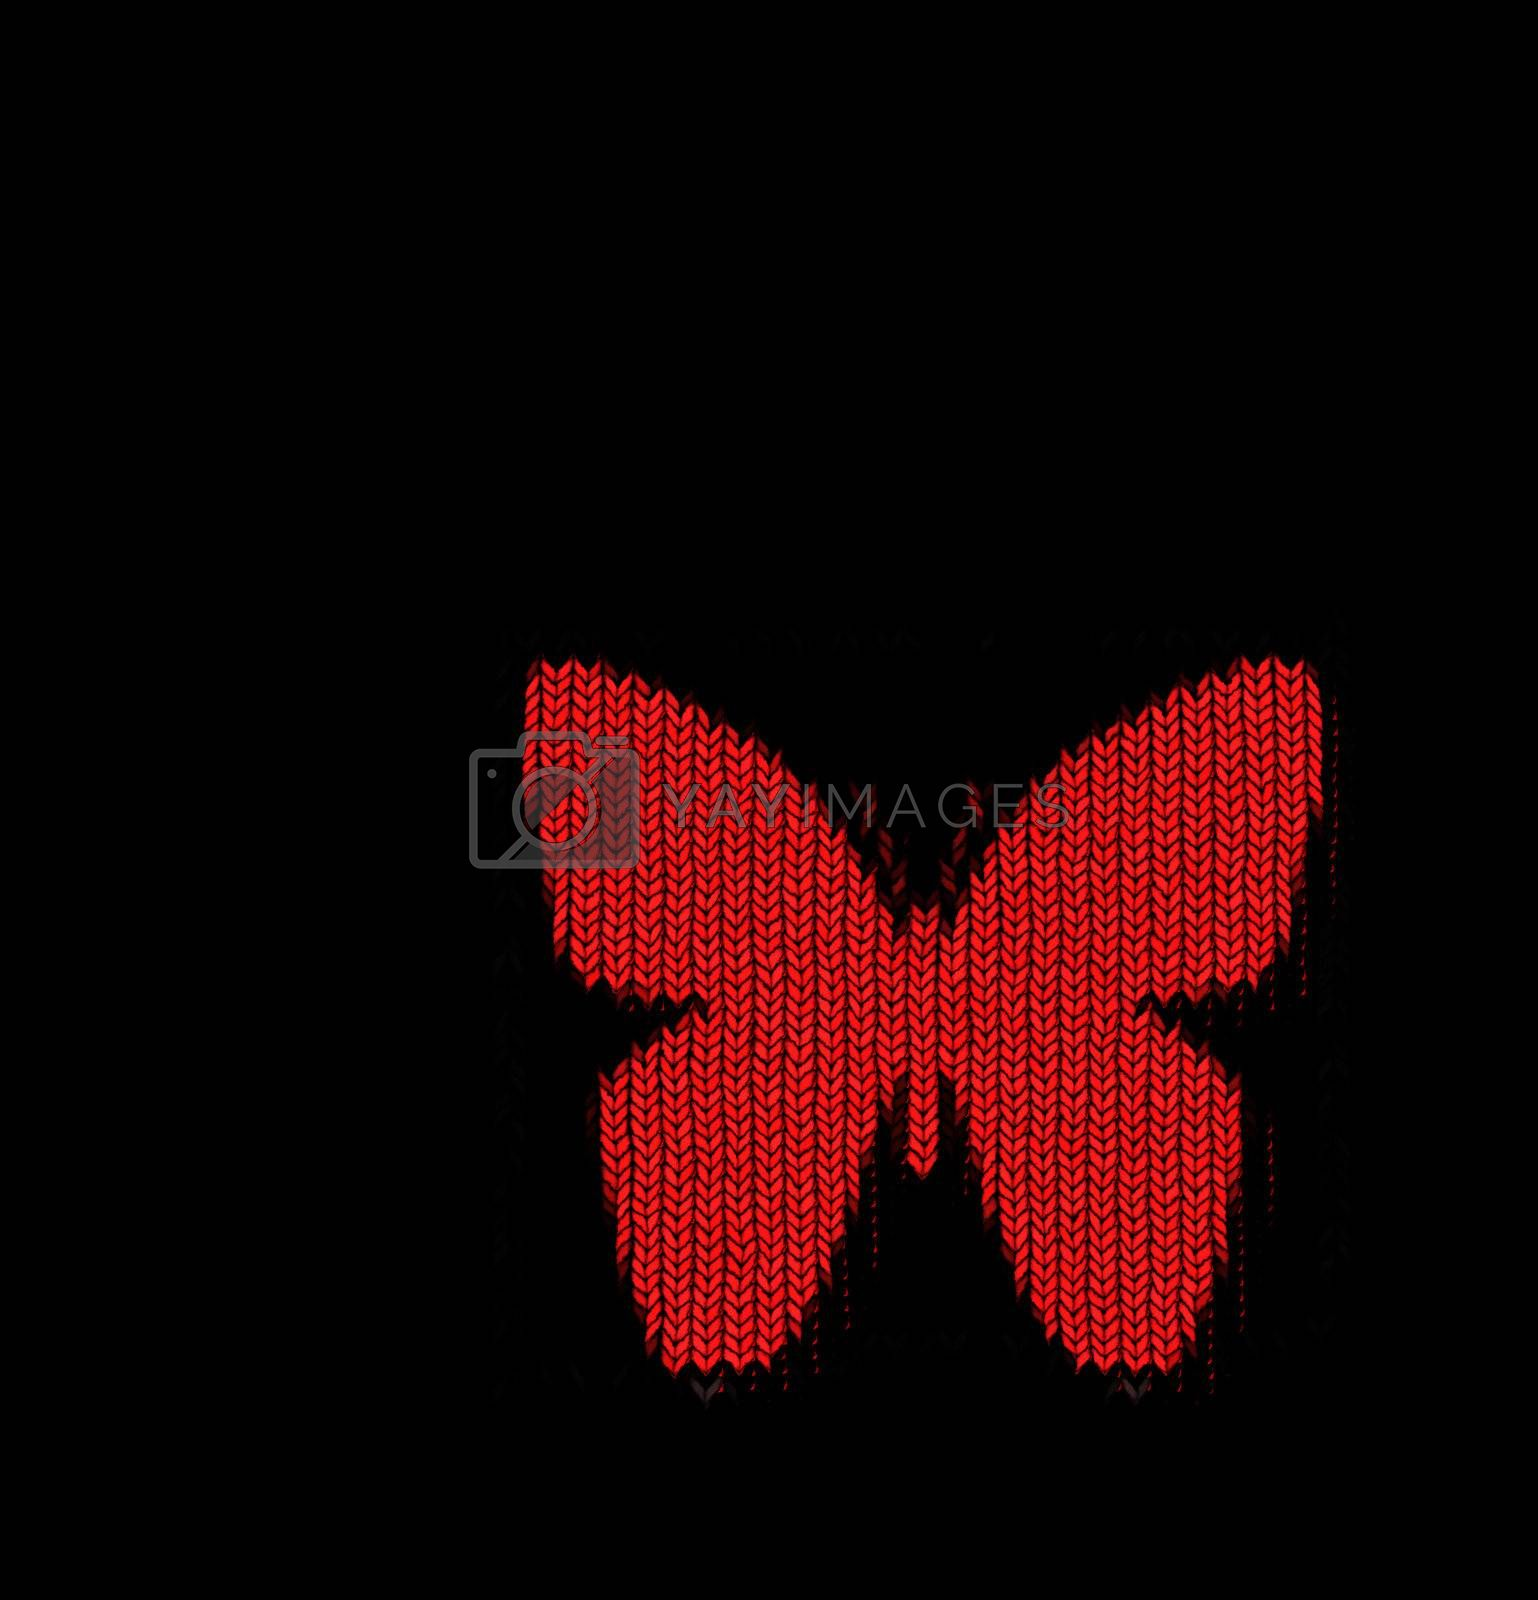 bright red butterfly shape in knitting pattern on black